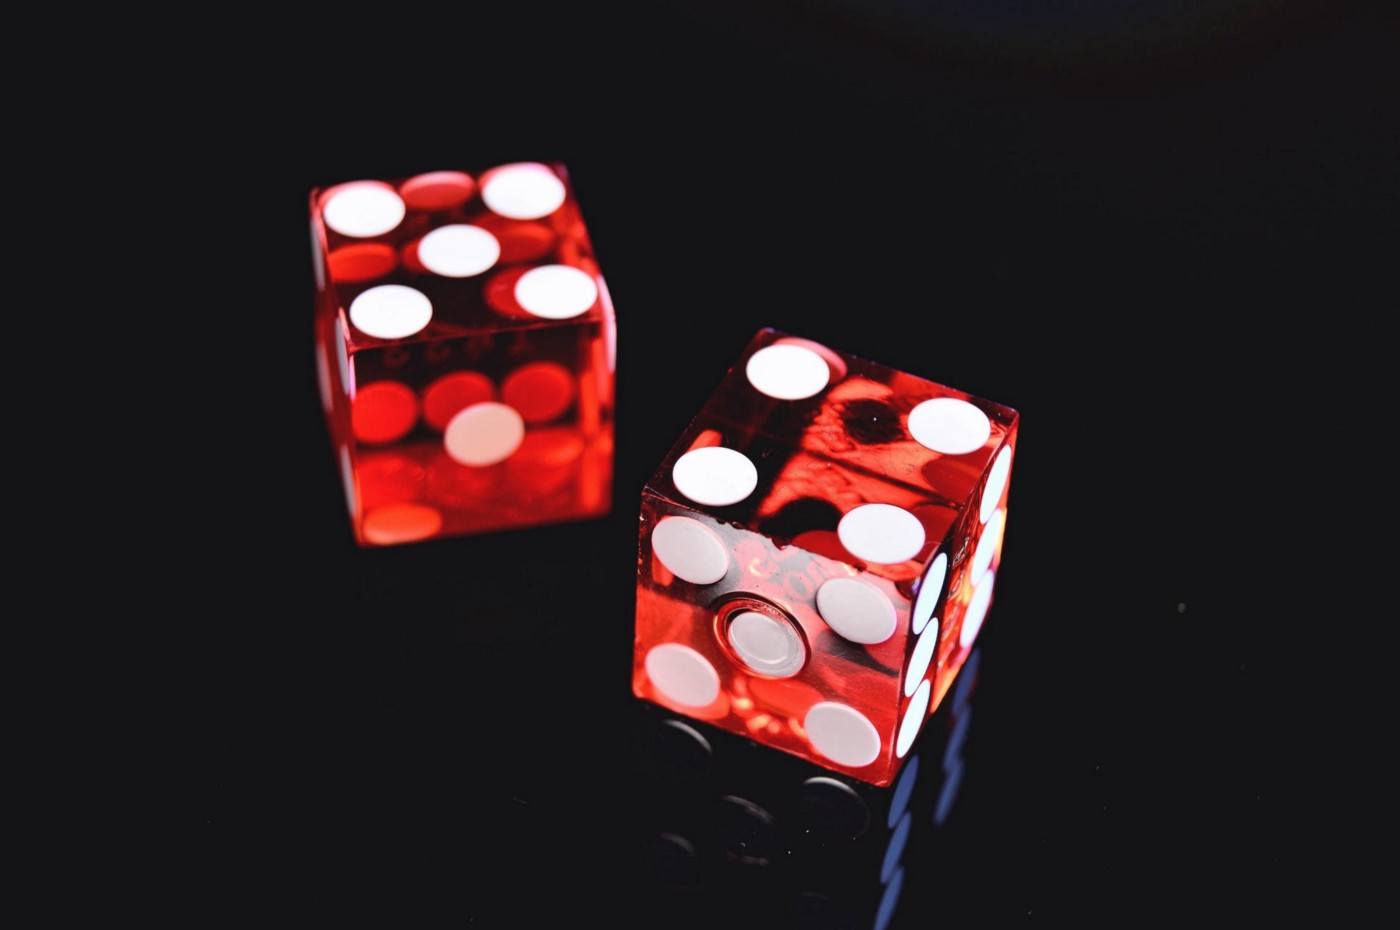 Two red die on a black background